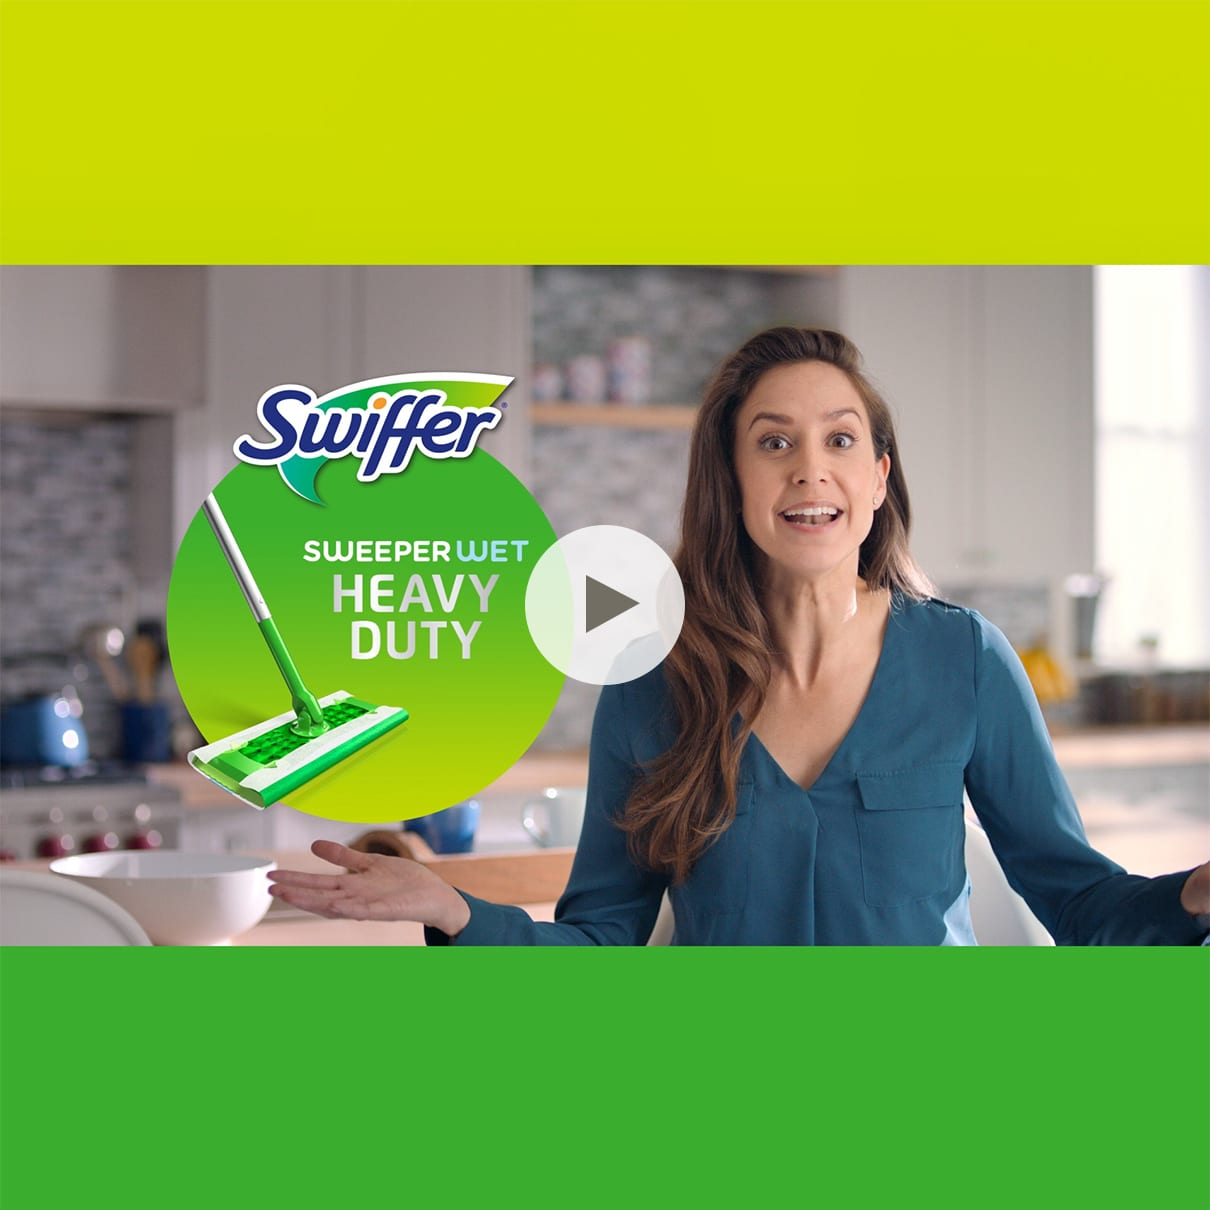 swiffer-sweeper-wet-heavy-duty-gain-original video